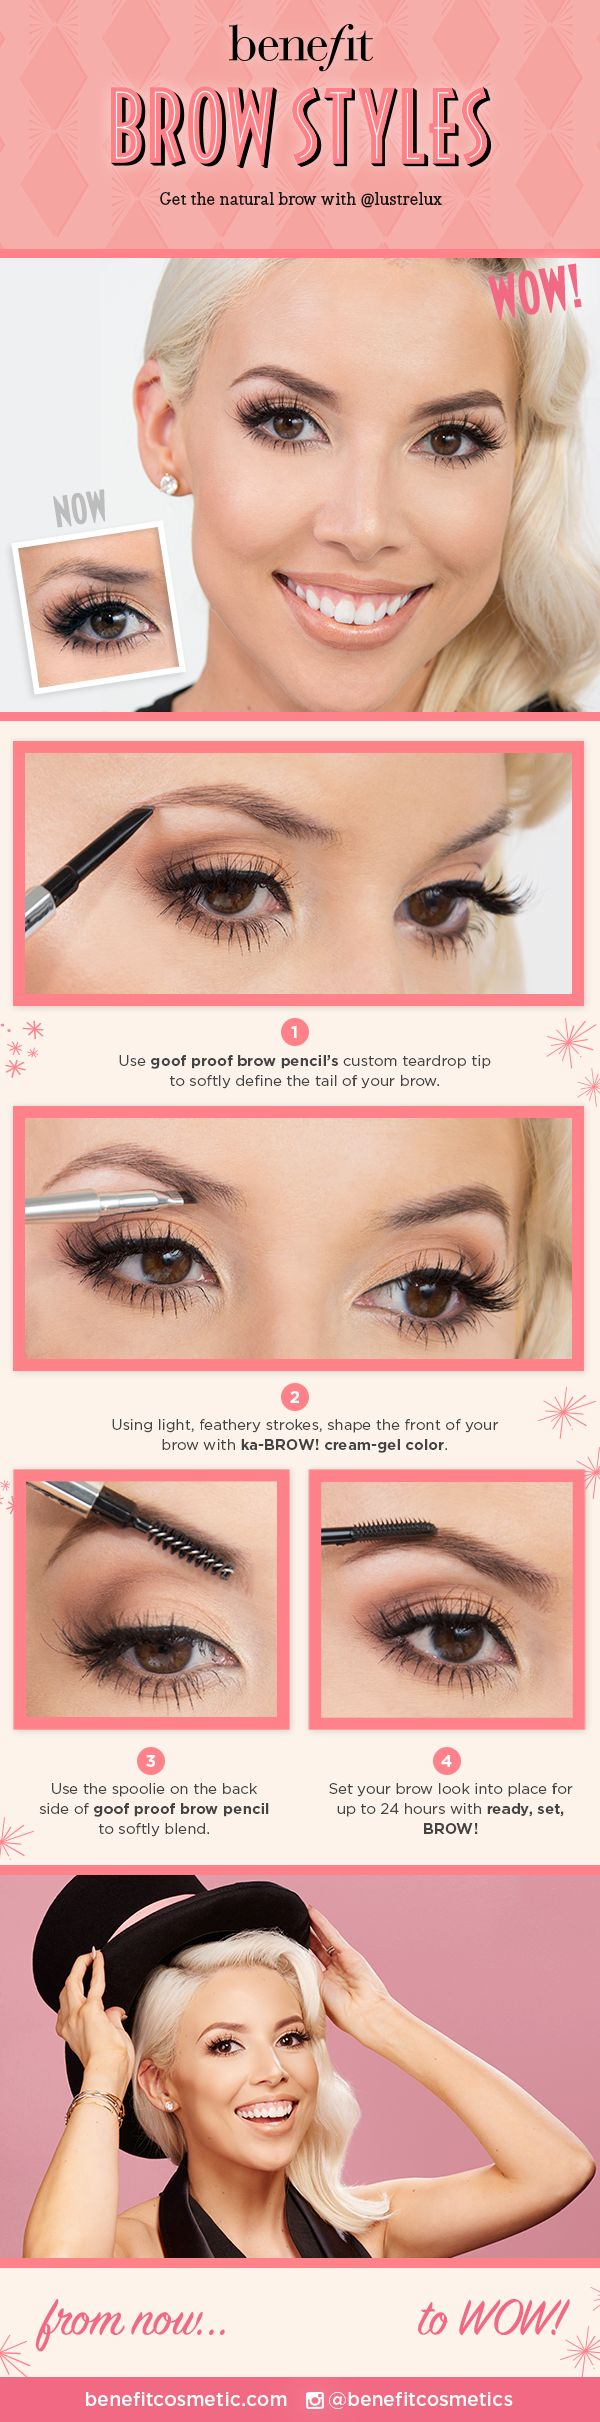 Pin By Cheer And Pom On Hair And Makeup Pinterest Natural Brows